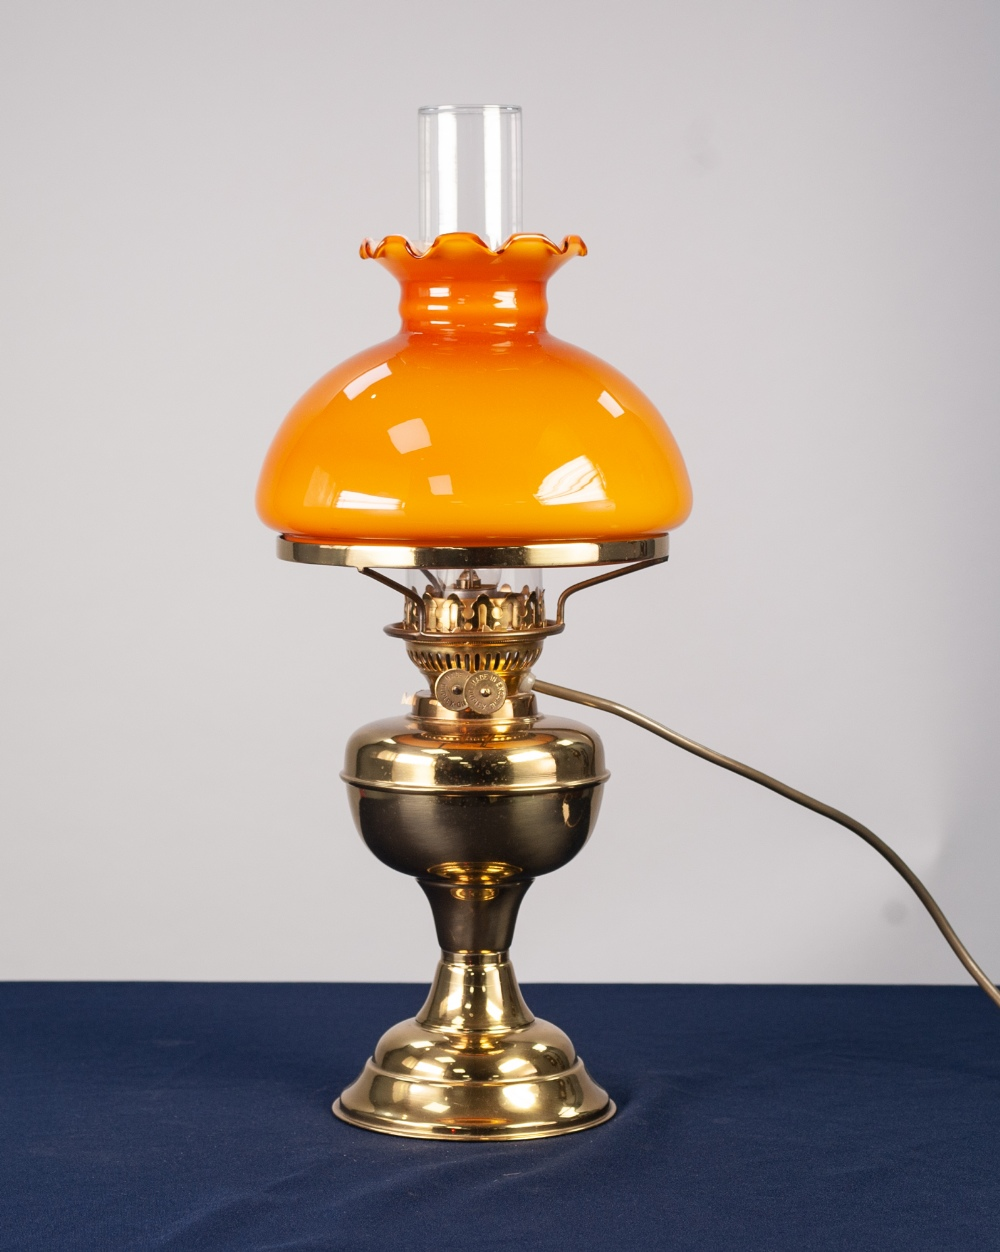 Lot 28 - AN ADAPTED OIL LAMP WITH ORANGE GLASS GLOBE AND CLEAR GLASS FUNNEL